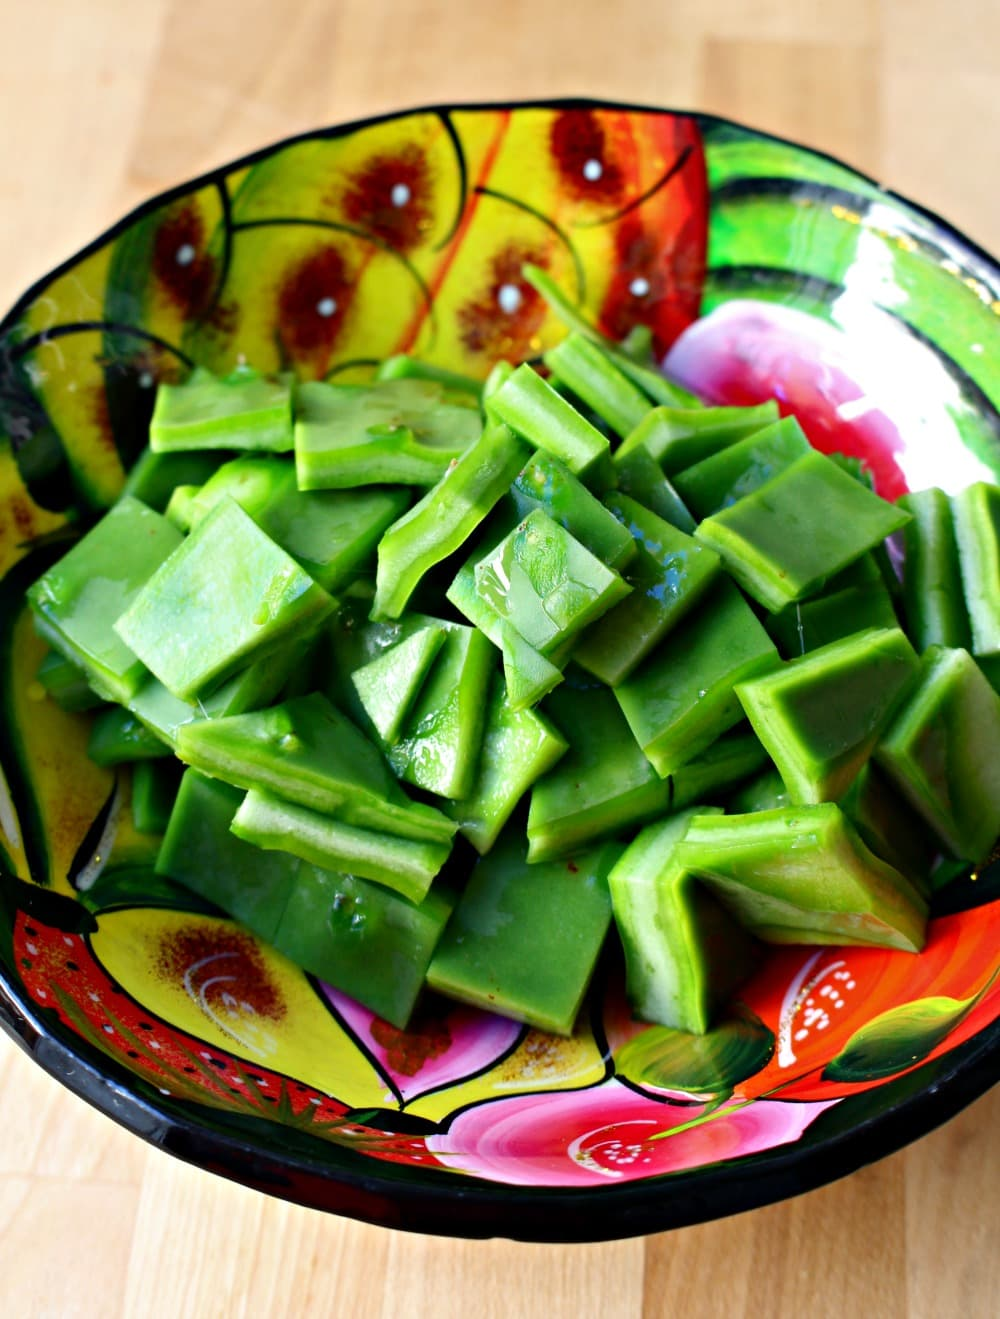 Diced nopales (or cactus) on a decorative and colorful bowl.